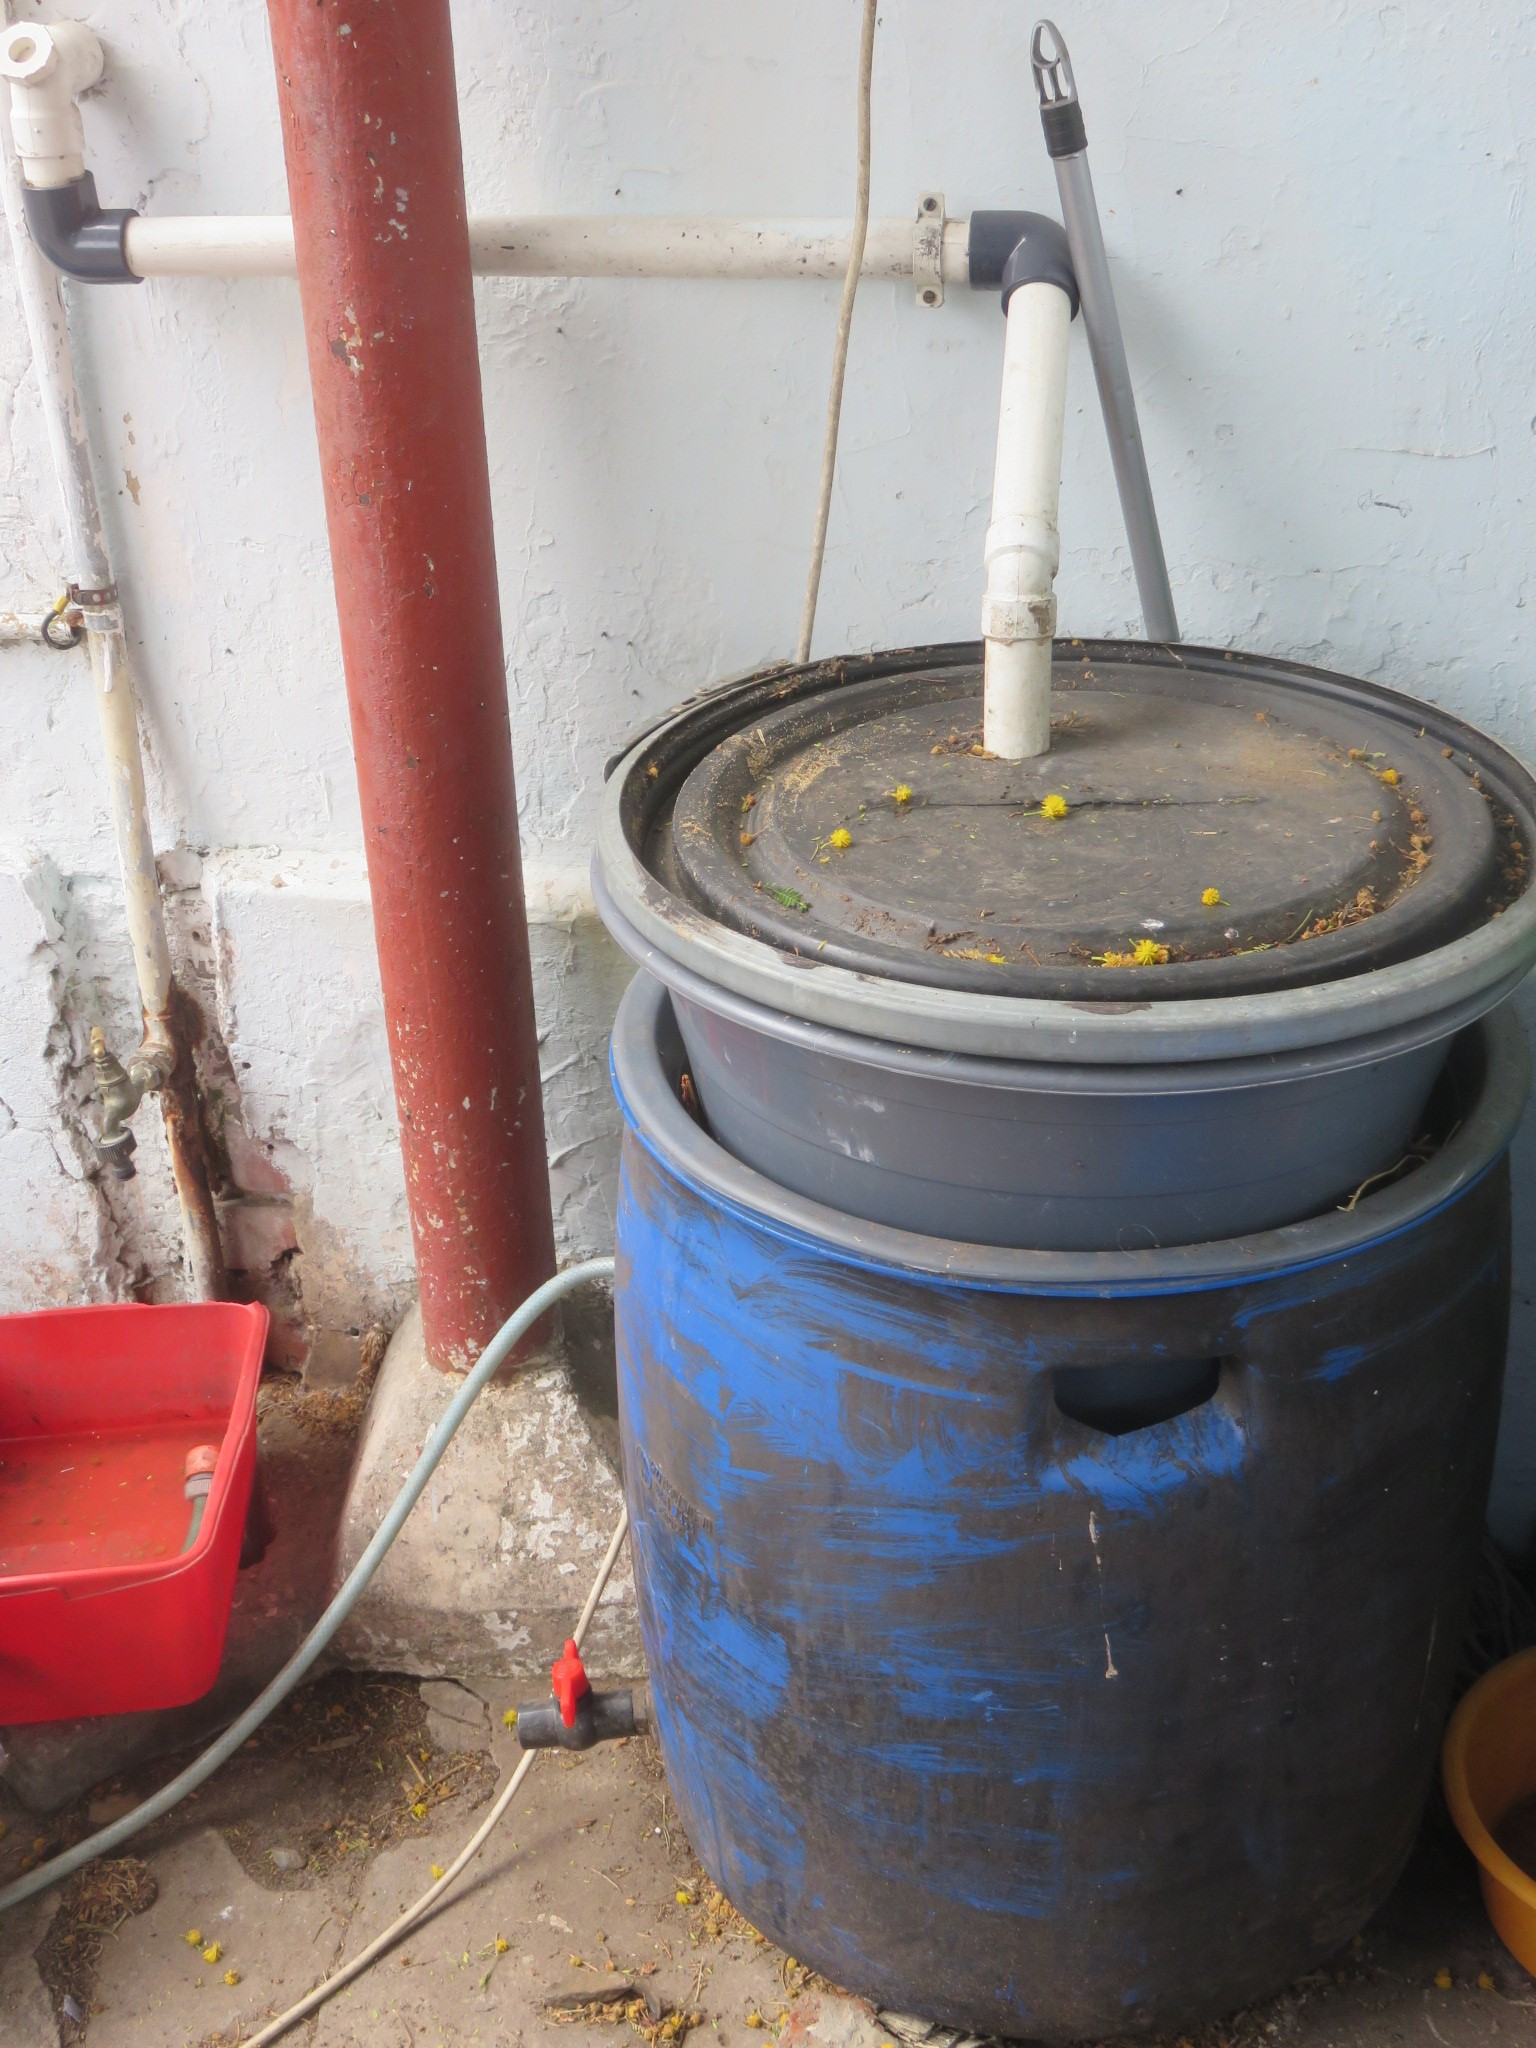 The first stage of recycling grey water in our system: worm bin and fat digester barrel.